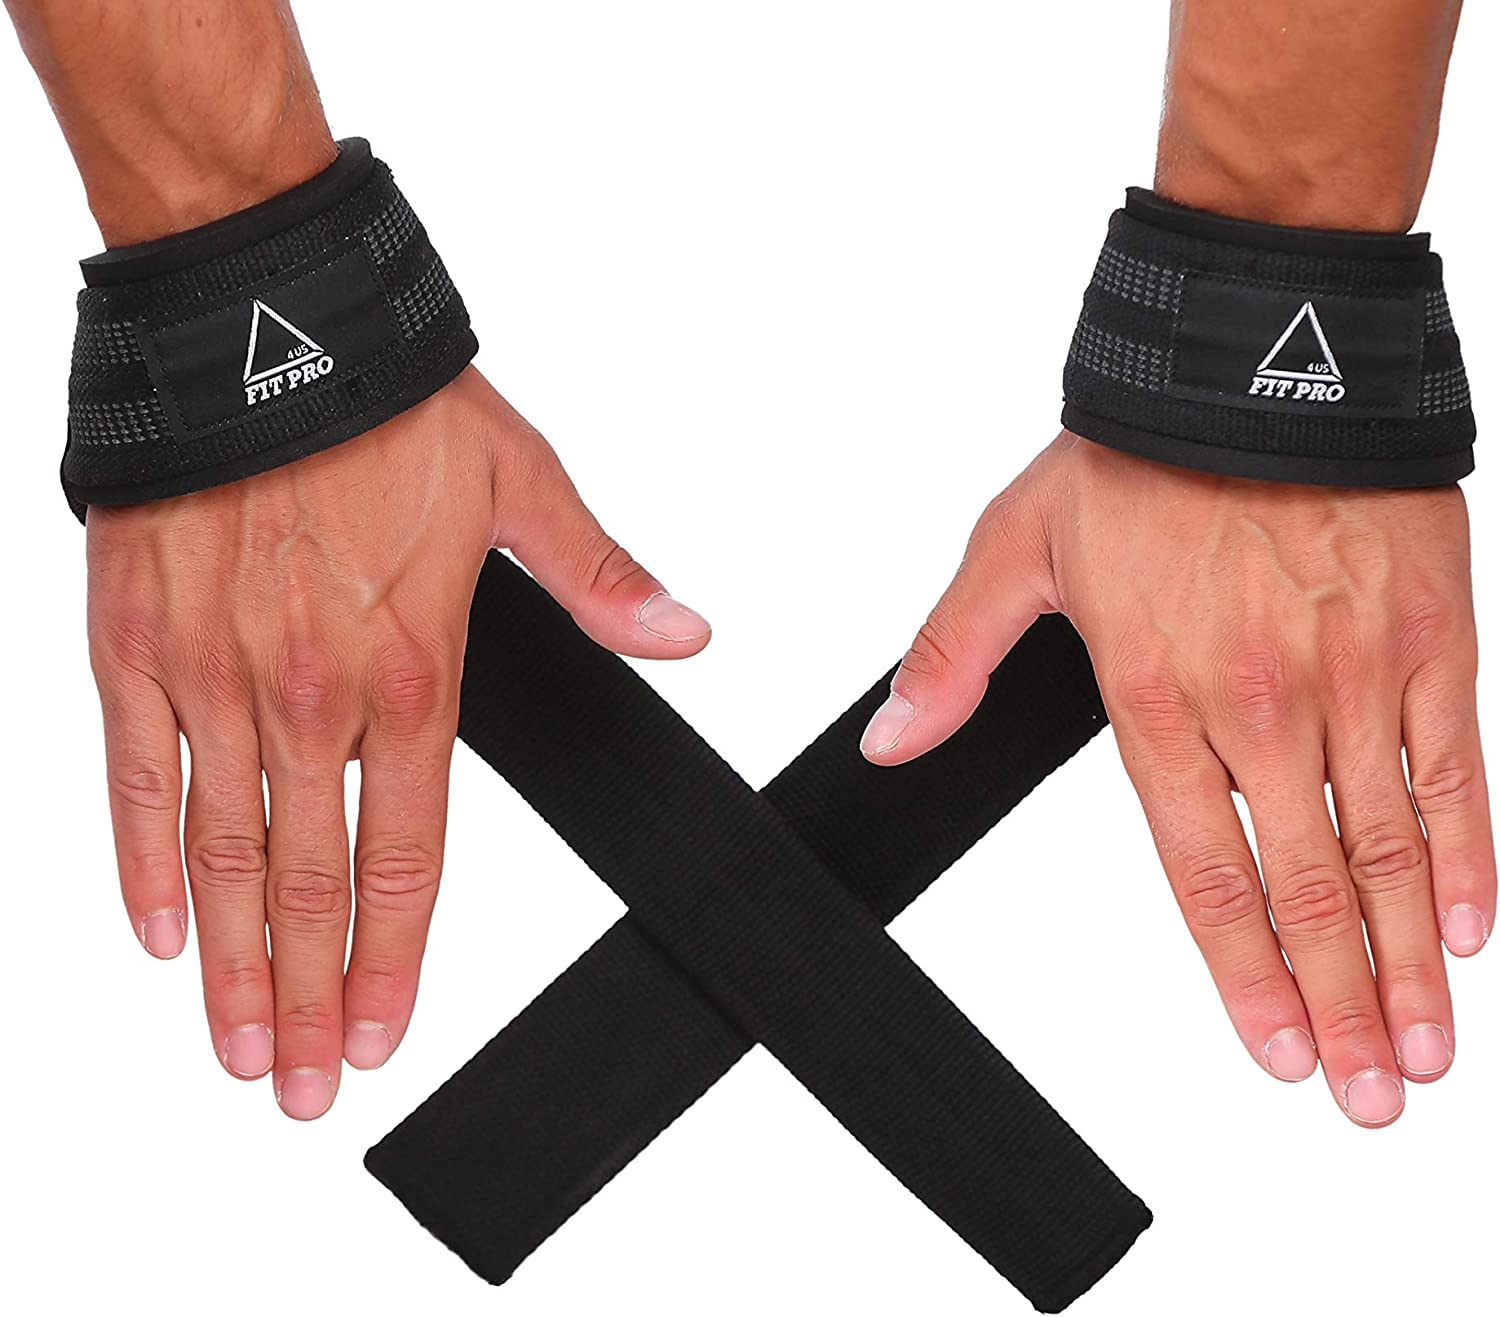 "Amazon.com : Fitpro4us Lifting Straps for Weightlifting 24""(Pair) Deadlift  Straps Neoprene Padded Wrist Straps & No-Slip Rubber Insertion for  Powerlifting, Bodybuilding, Heavy Lifting & Strength Training : Sports &  Outdoors"